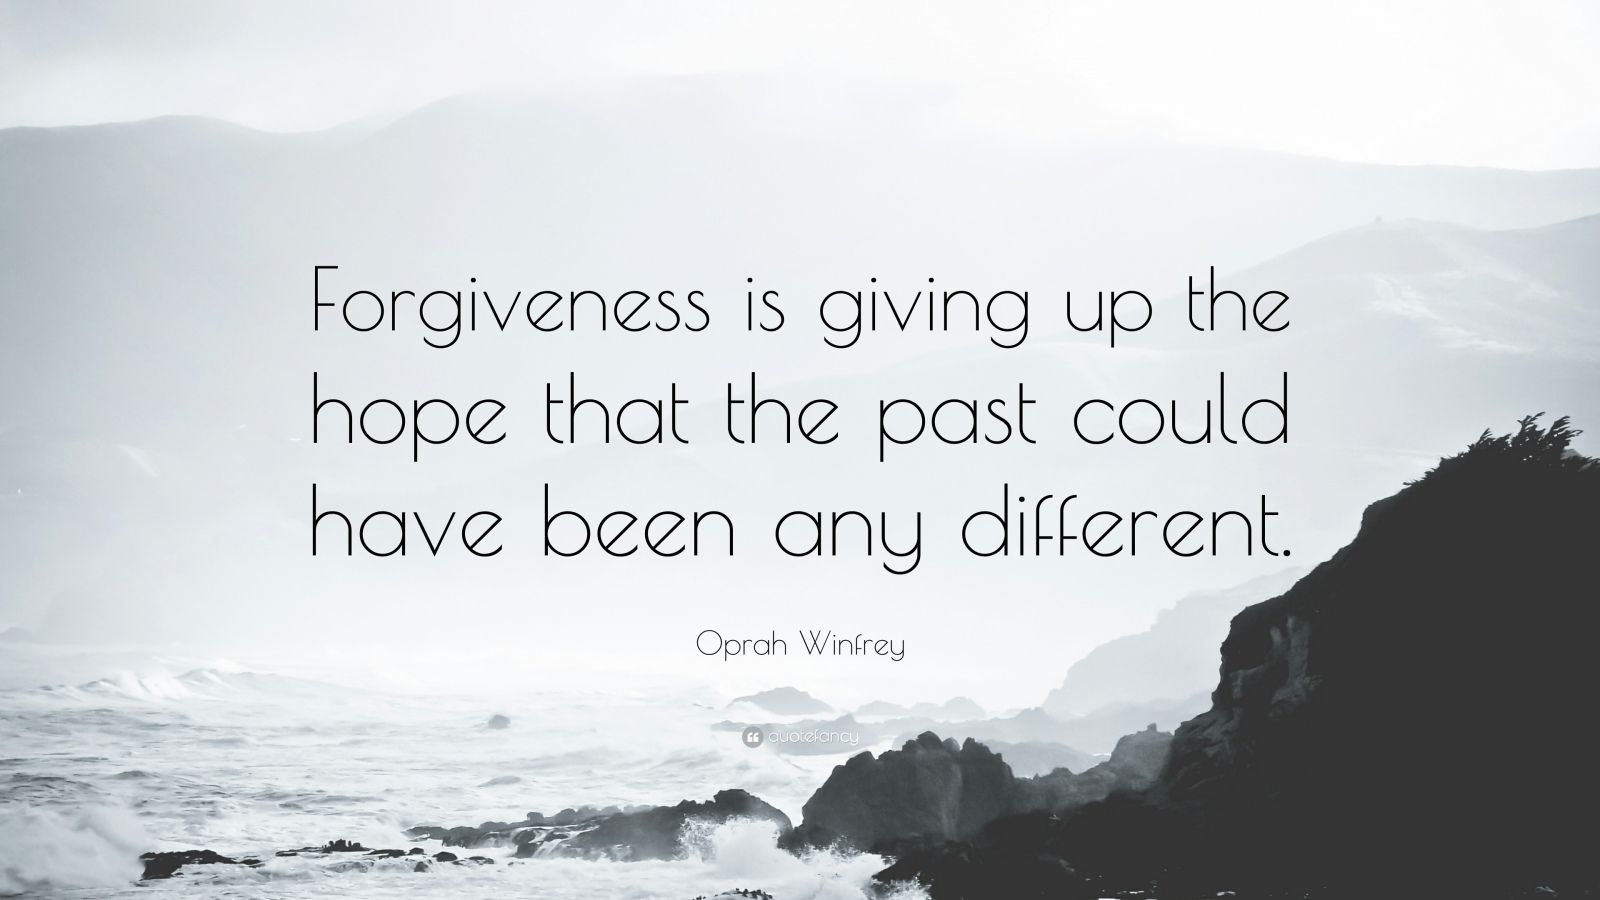 """Oprah Winfrey Quote: """"Forgiveness is giving up the hope that the past could have been any different."""""""